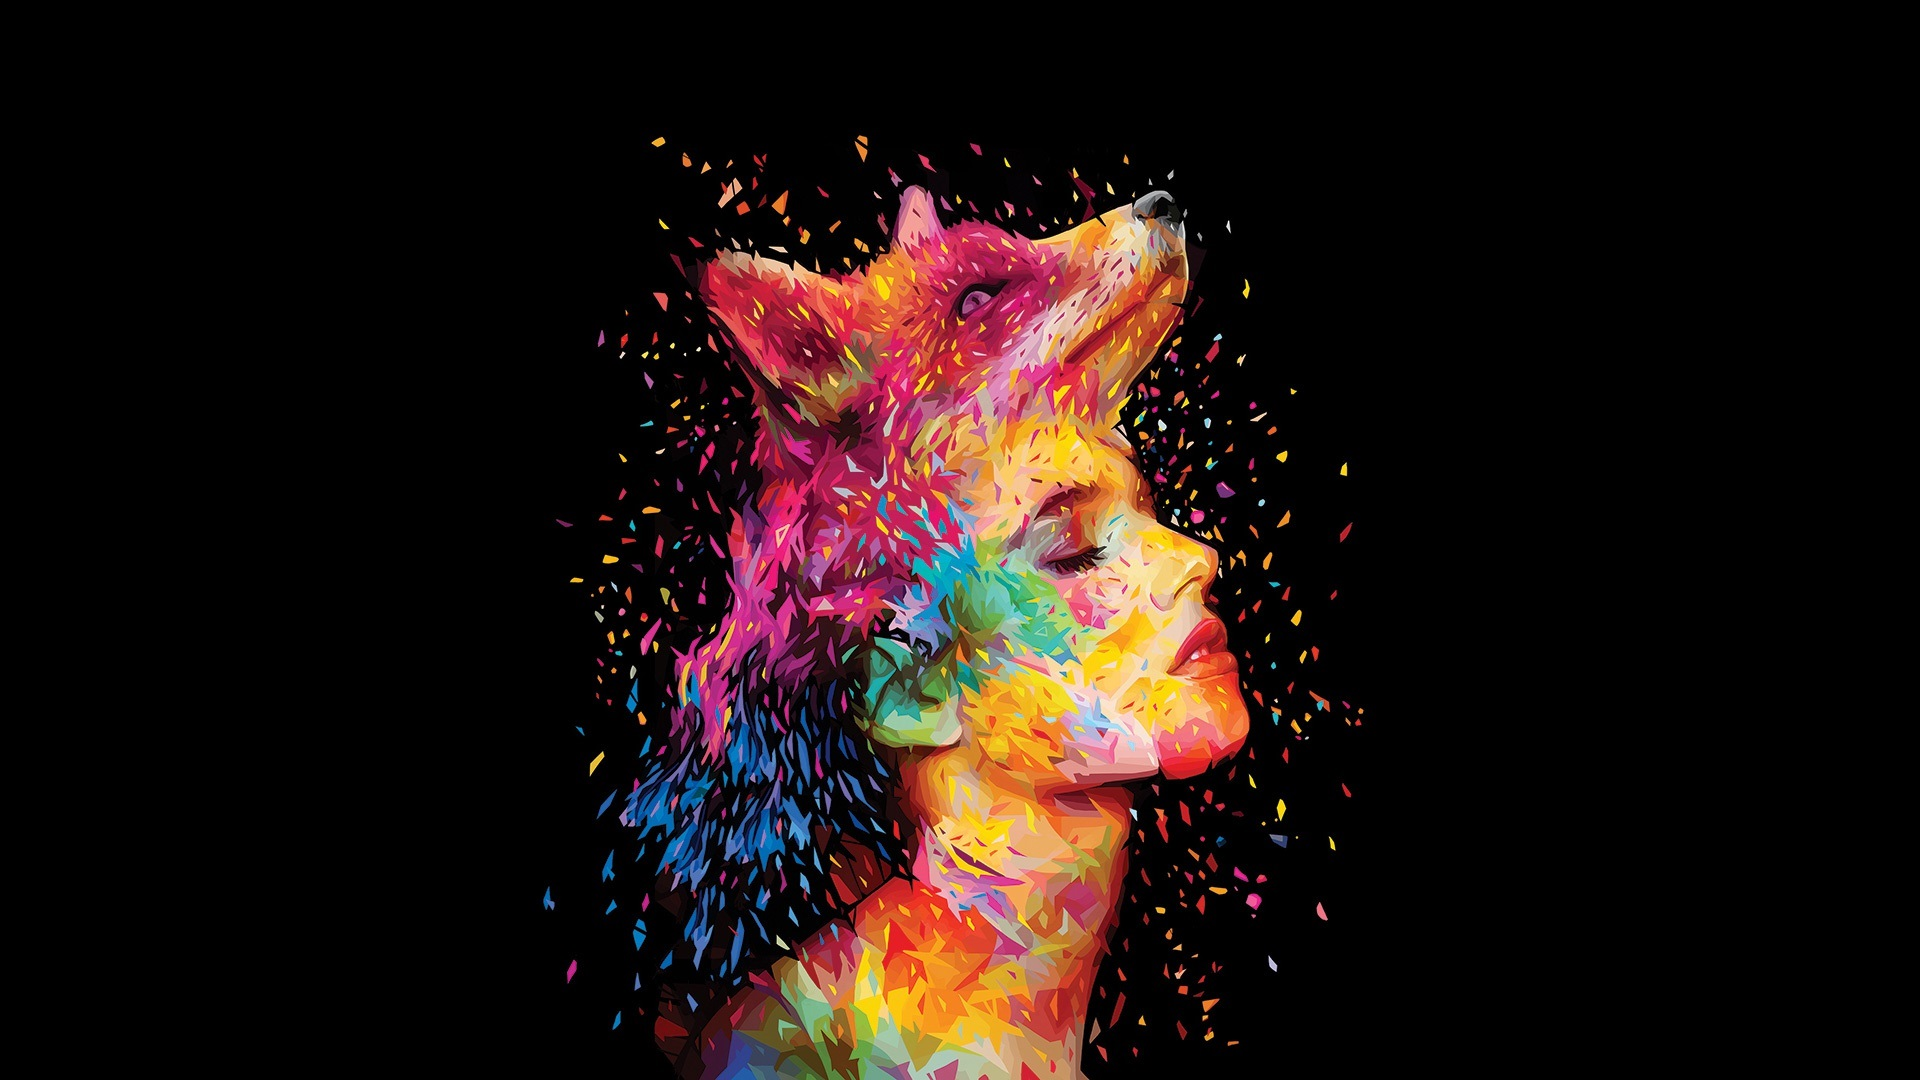 Wallpaper Abstract Design Fox Girl Face Painting